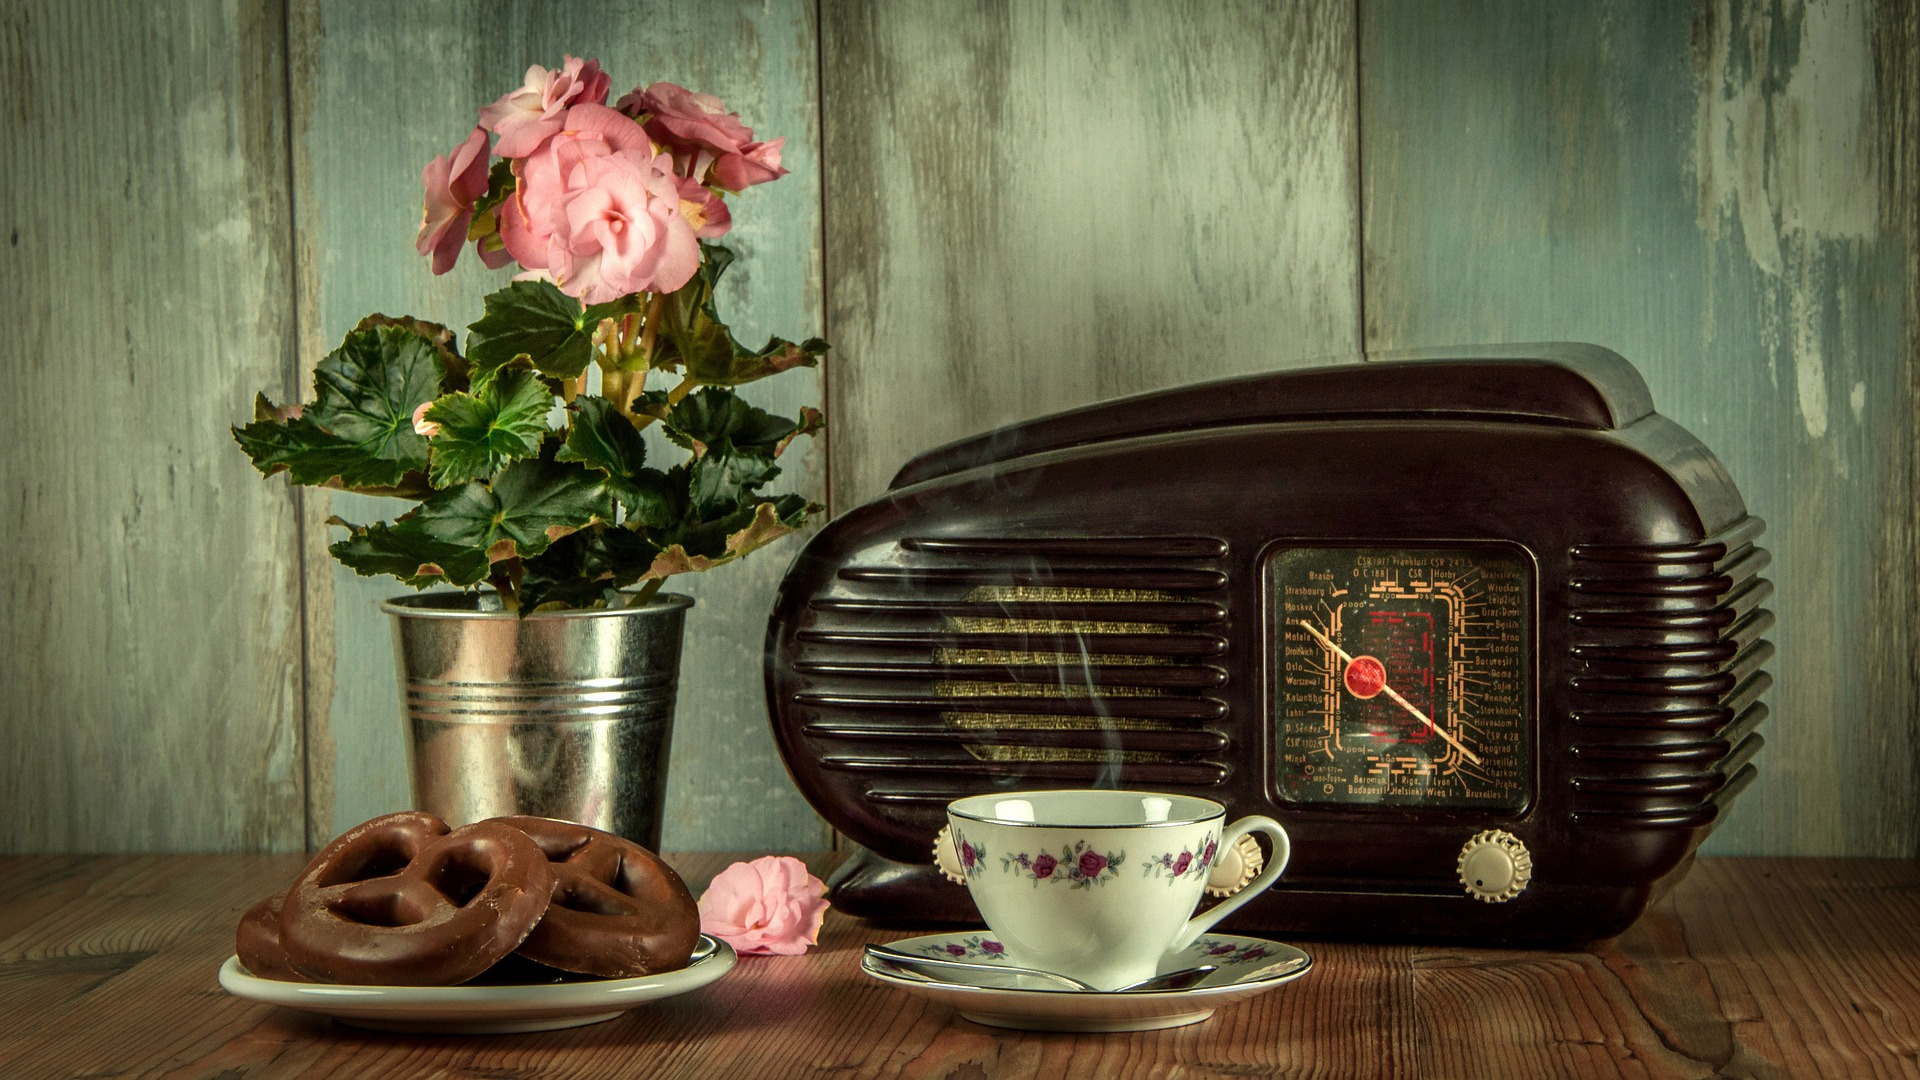 Image: vintage teacup and saucer radio and vase with rose